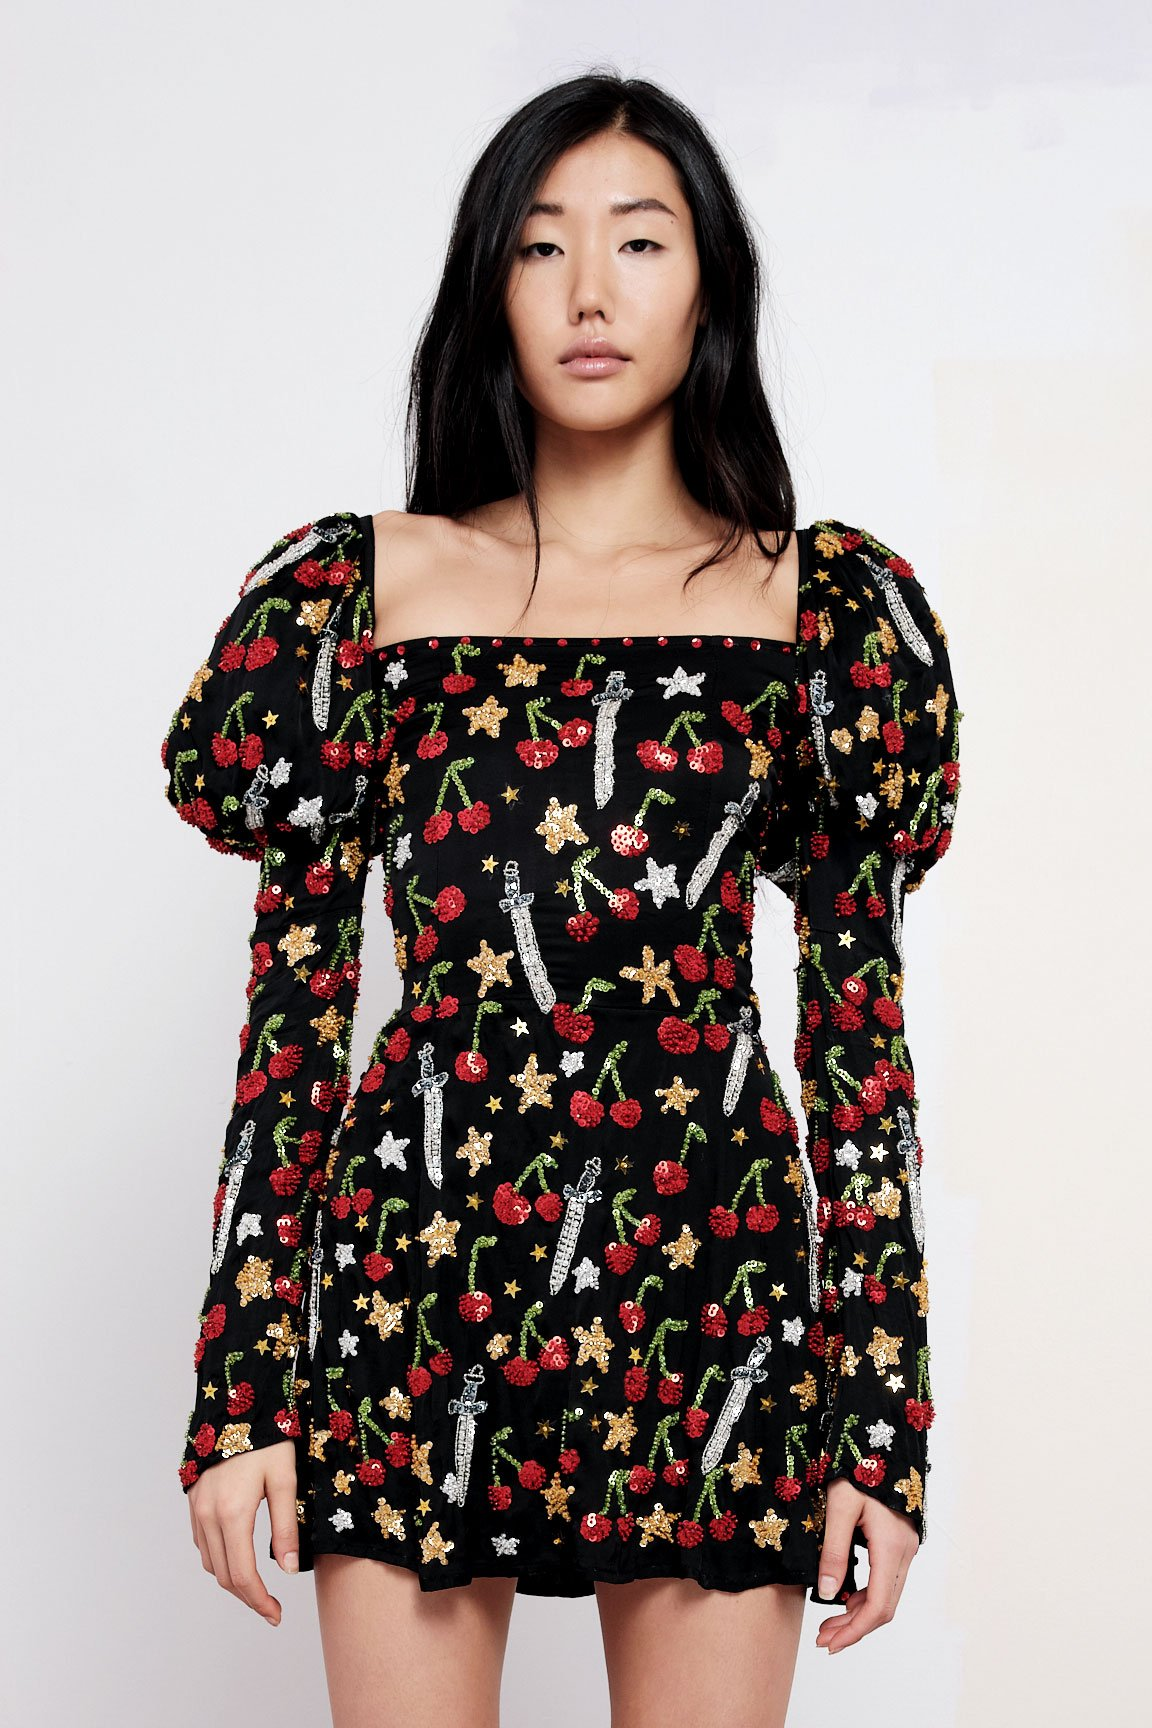 The Confessions Puff Sleeve Mini Dress